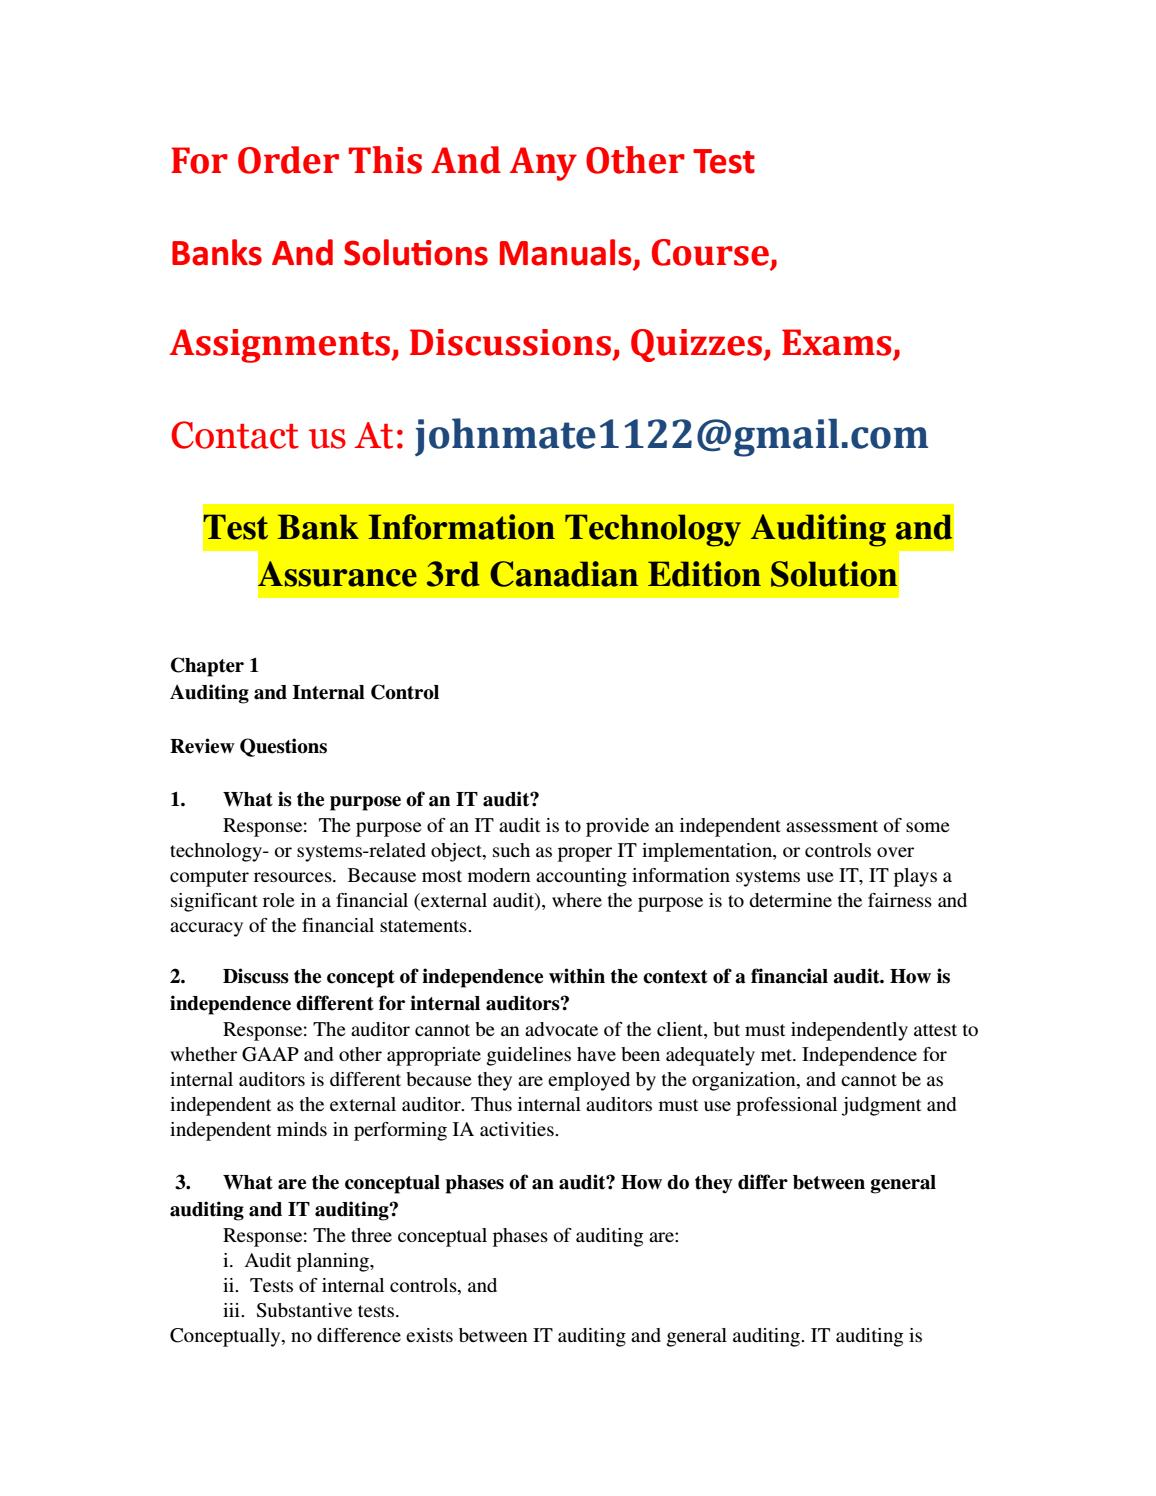 management control systems 3rd edition solution manual